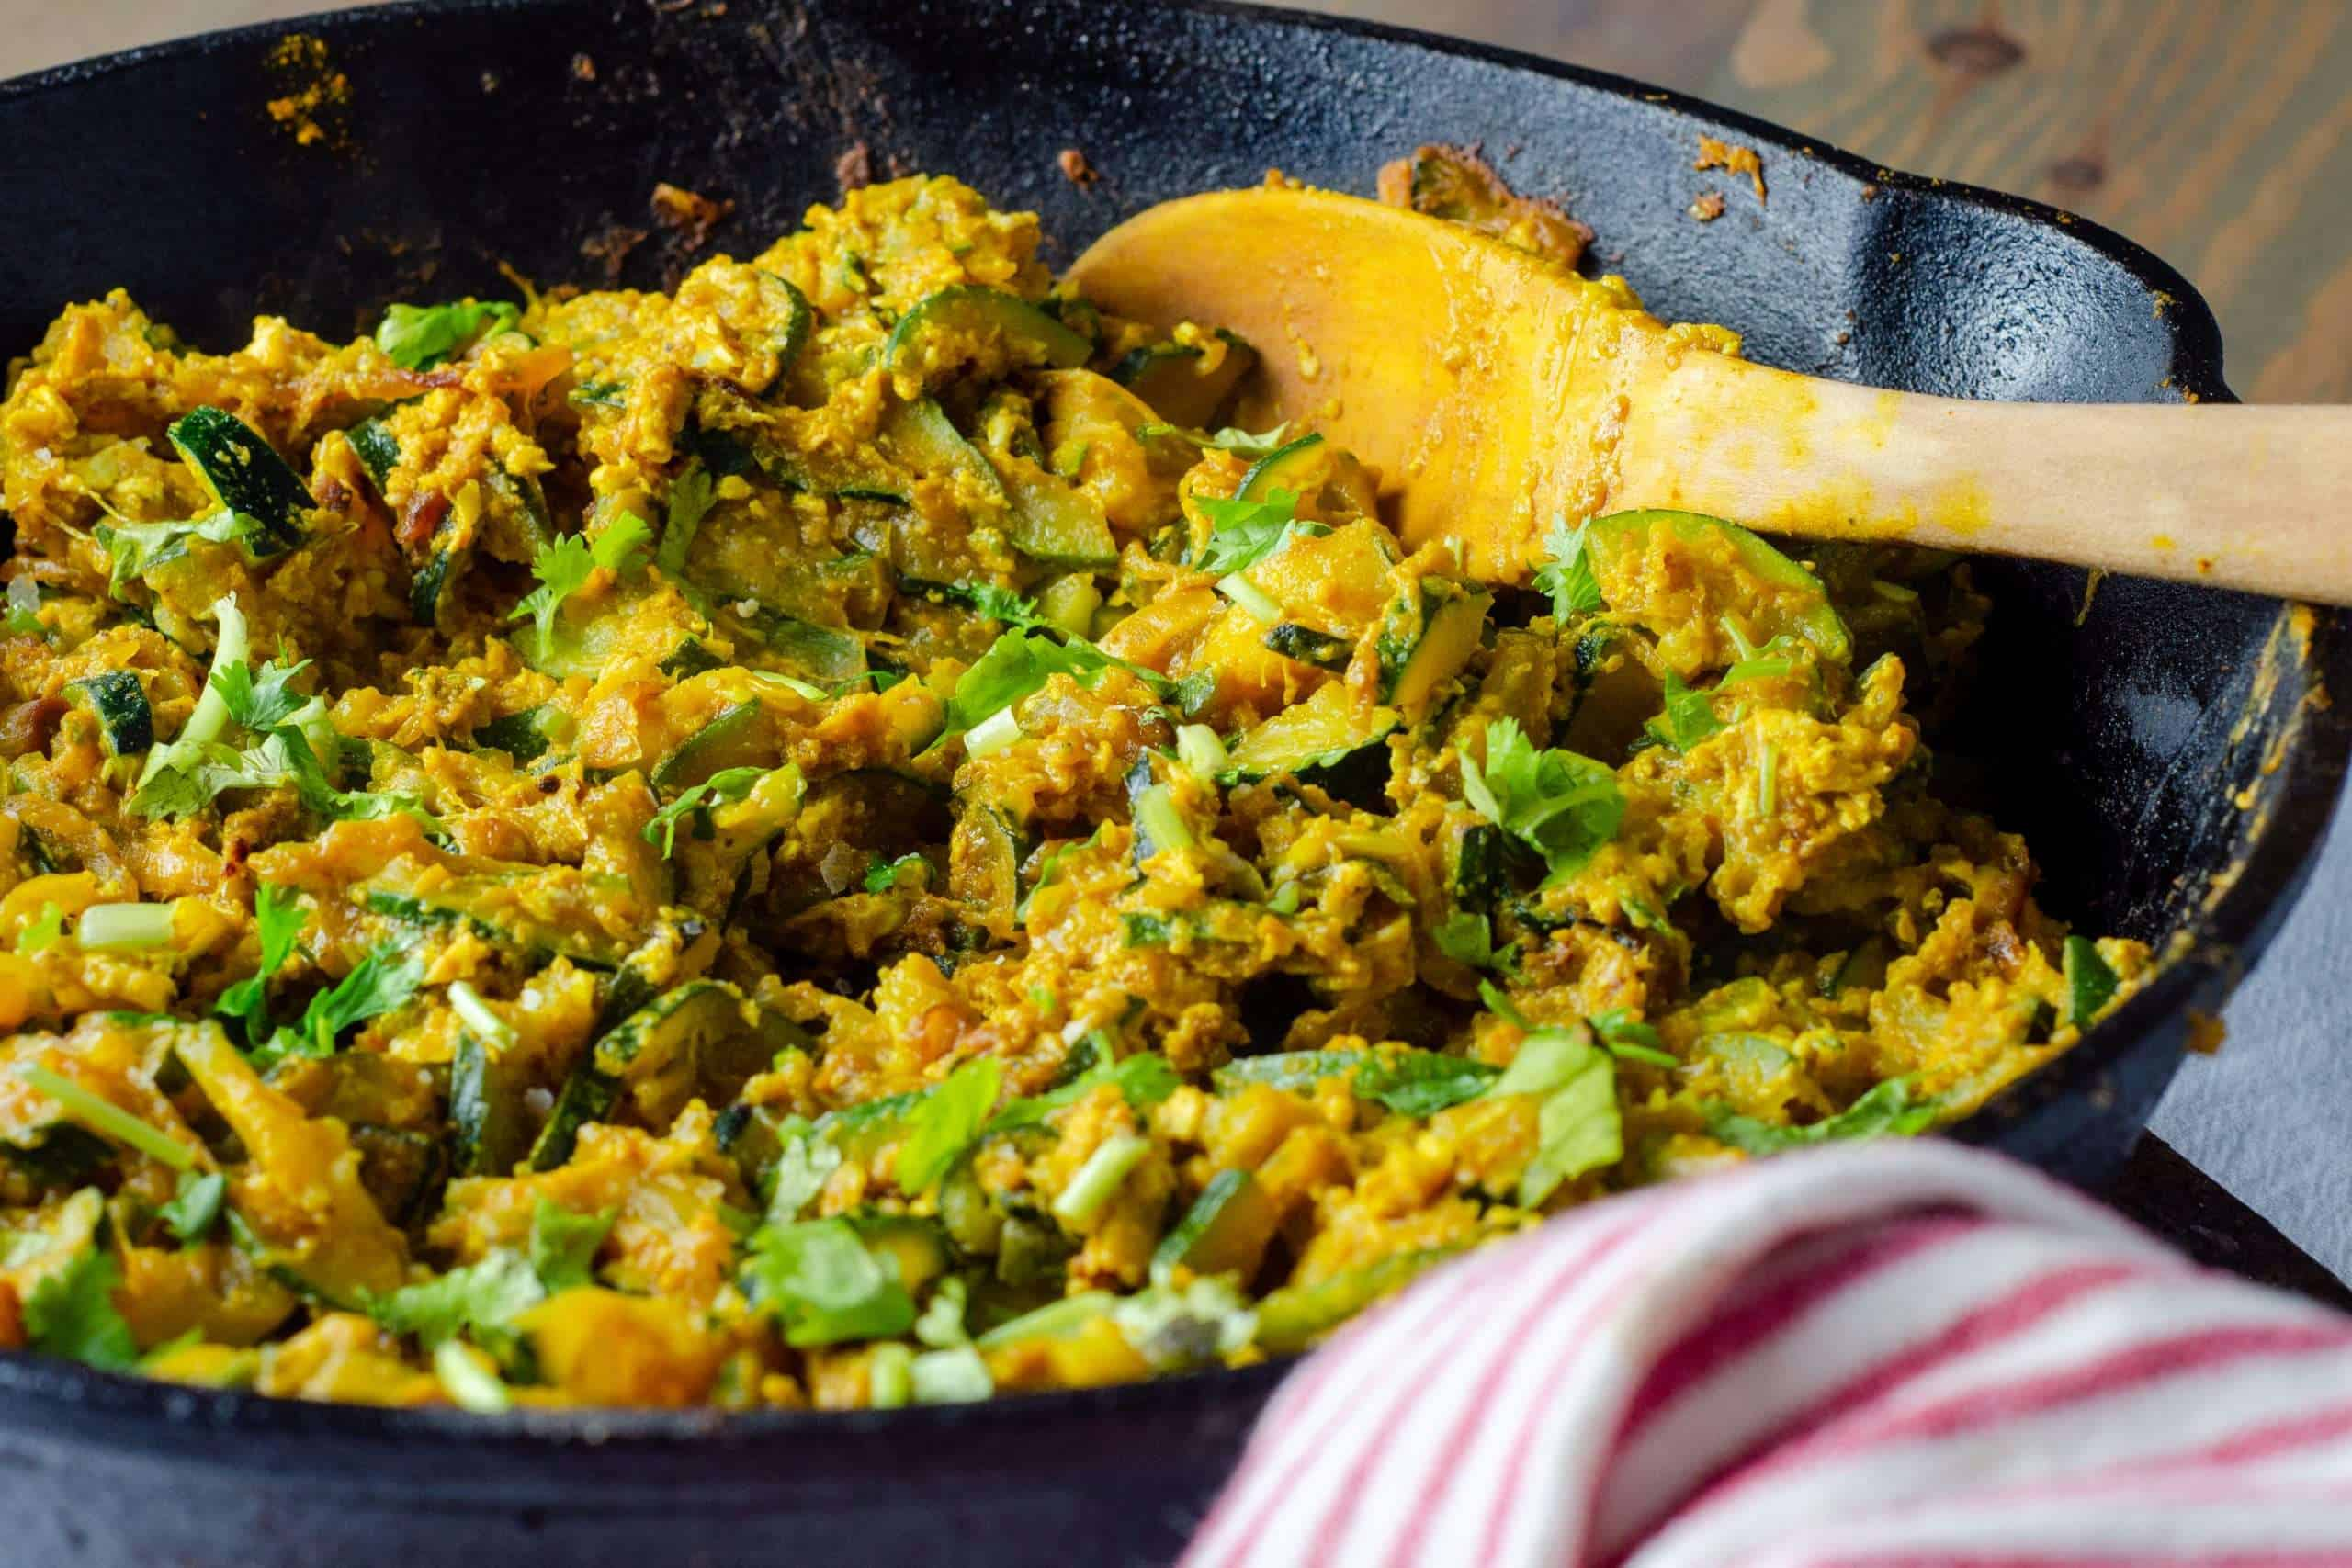 Low Carb Zucchini and Egg Bhaji in a cast iron skillet